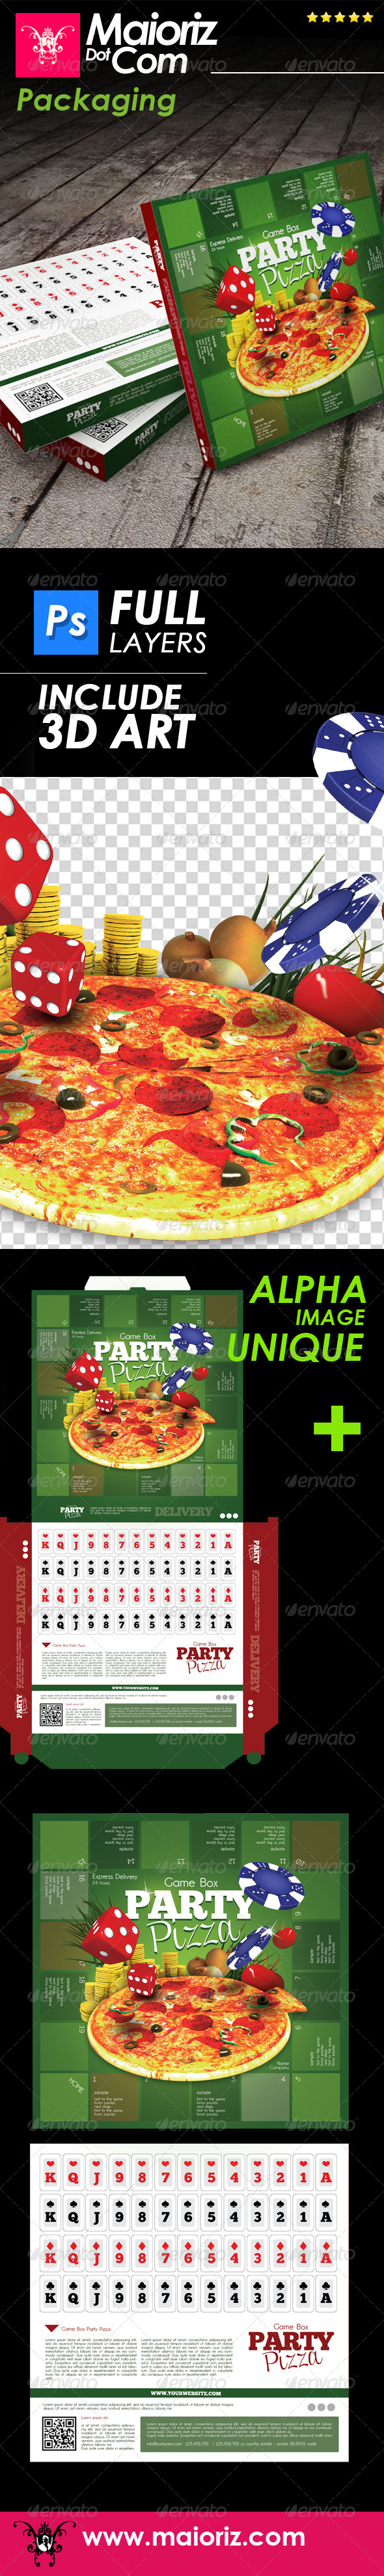 GraphicRiver Party Pizza Packaging 7724825